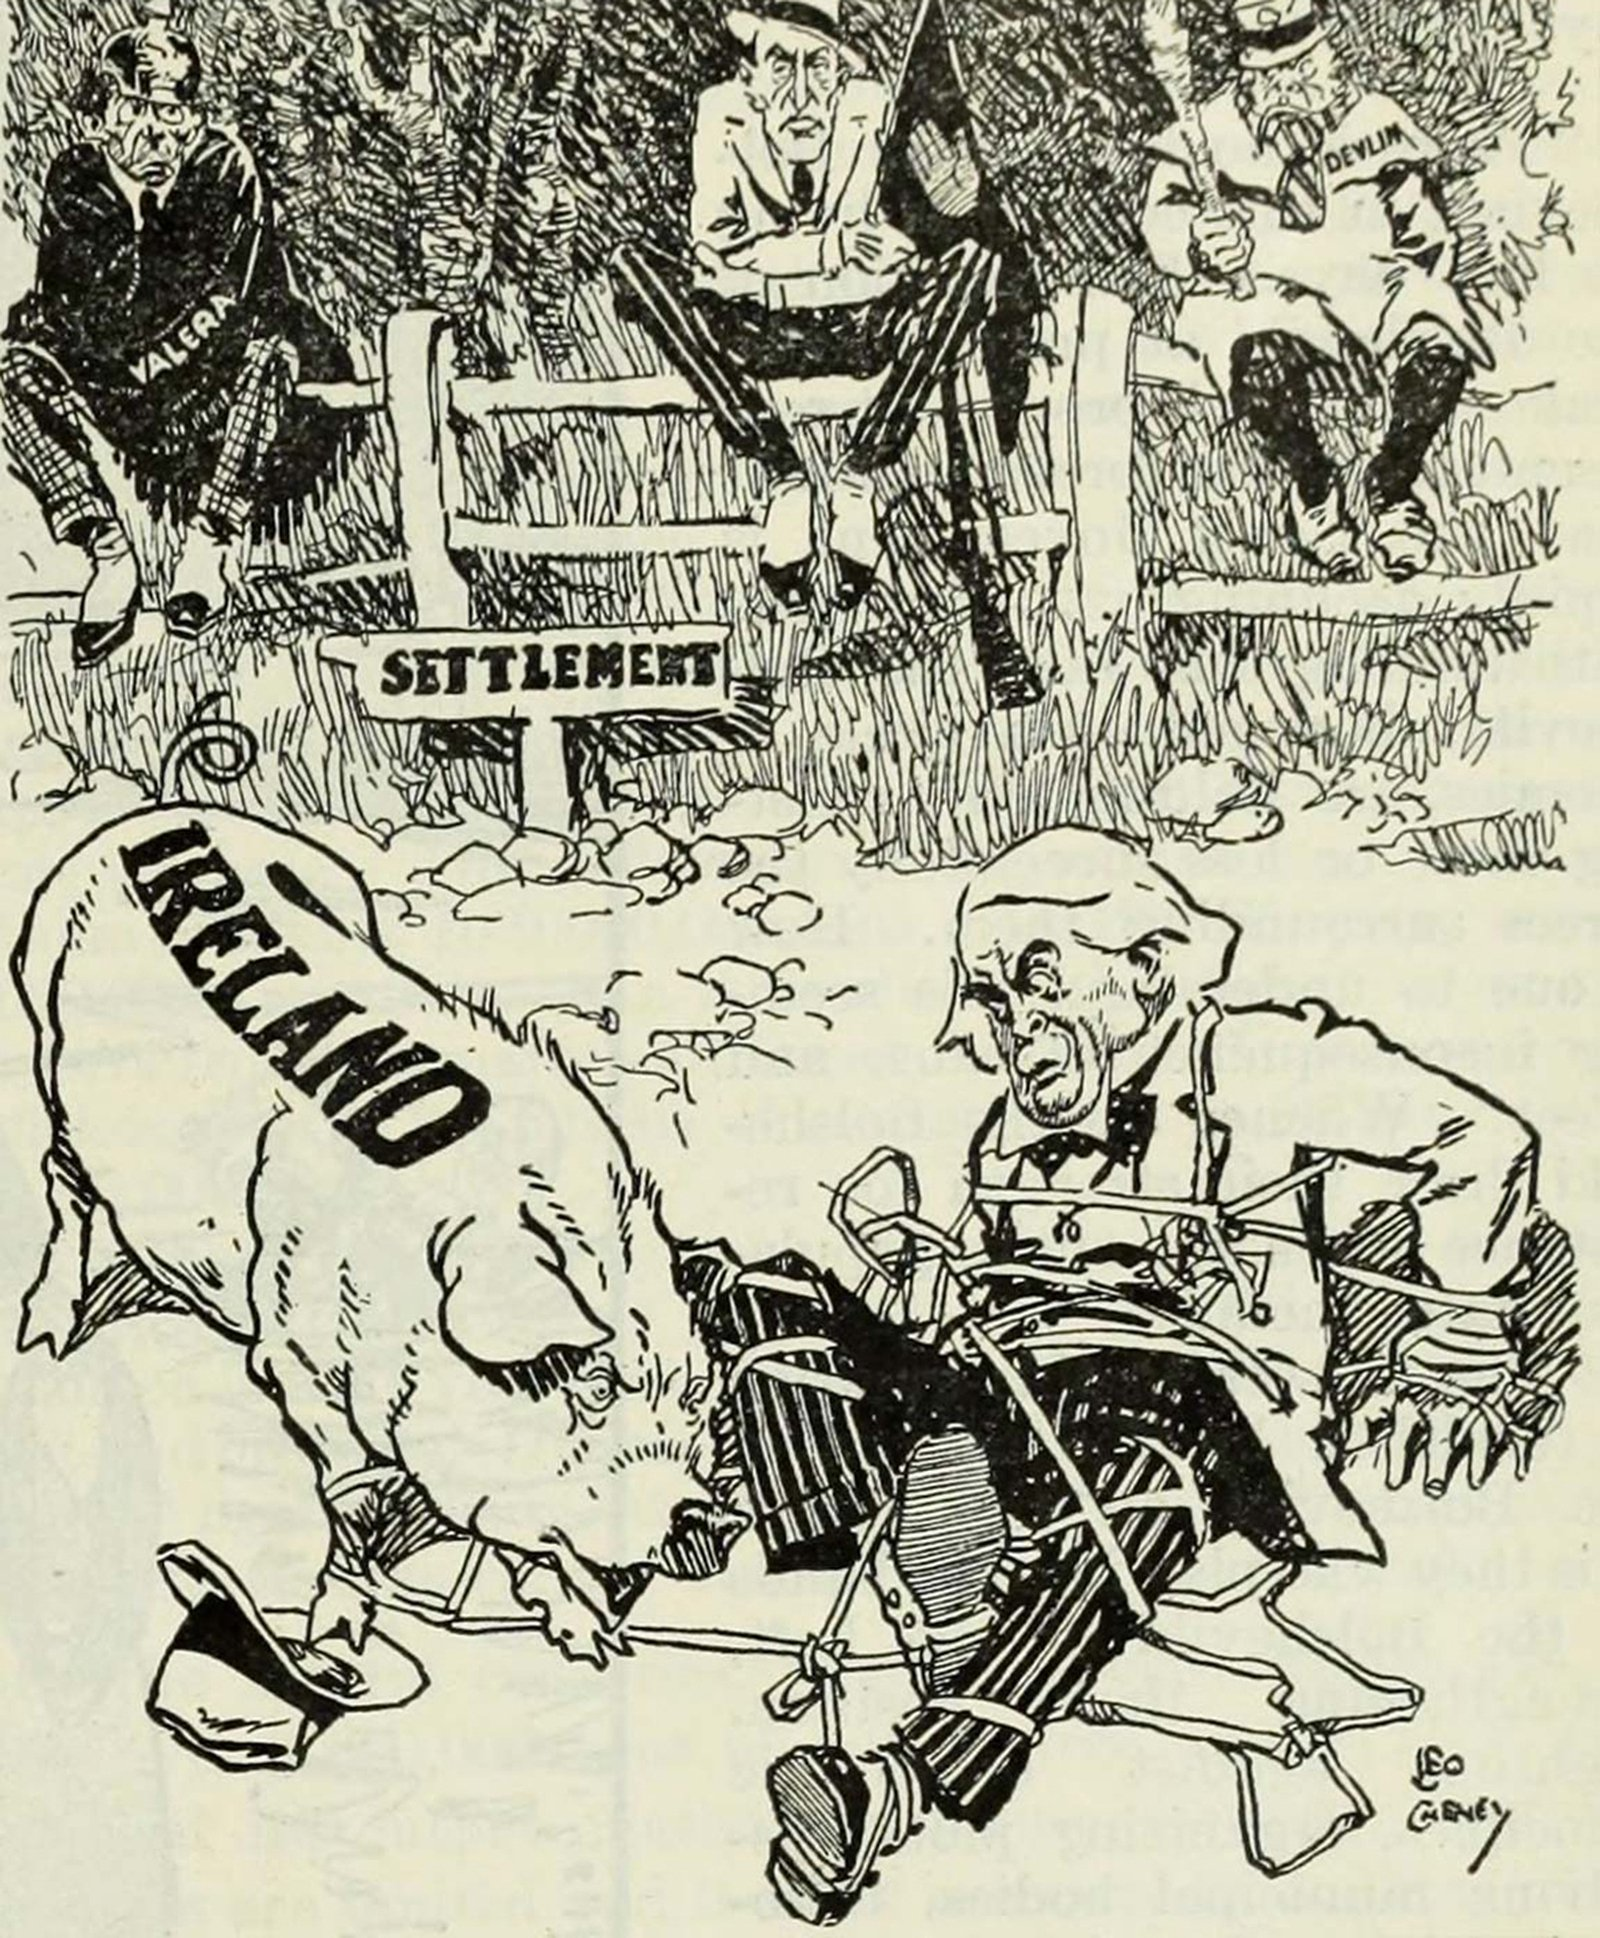 Image - Cartoon showing Lloyd George being tangled up by the Irish question, with Éamon de Valera, Edward Carson and Joseph Devlin looking on. Photo: Literary Digest, 10 August 1919